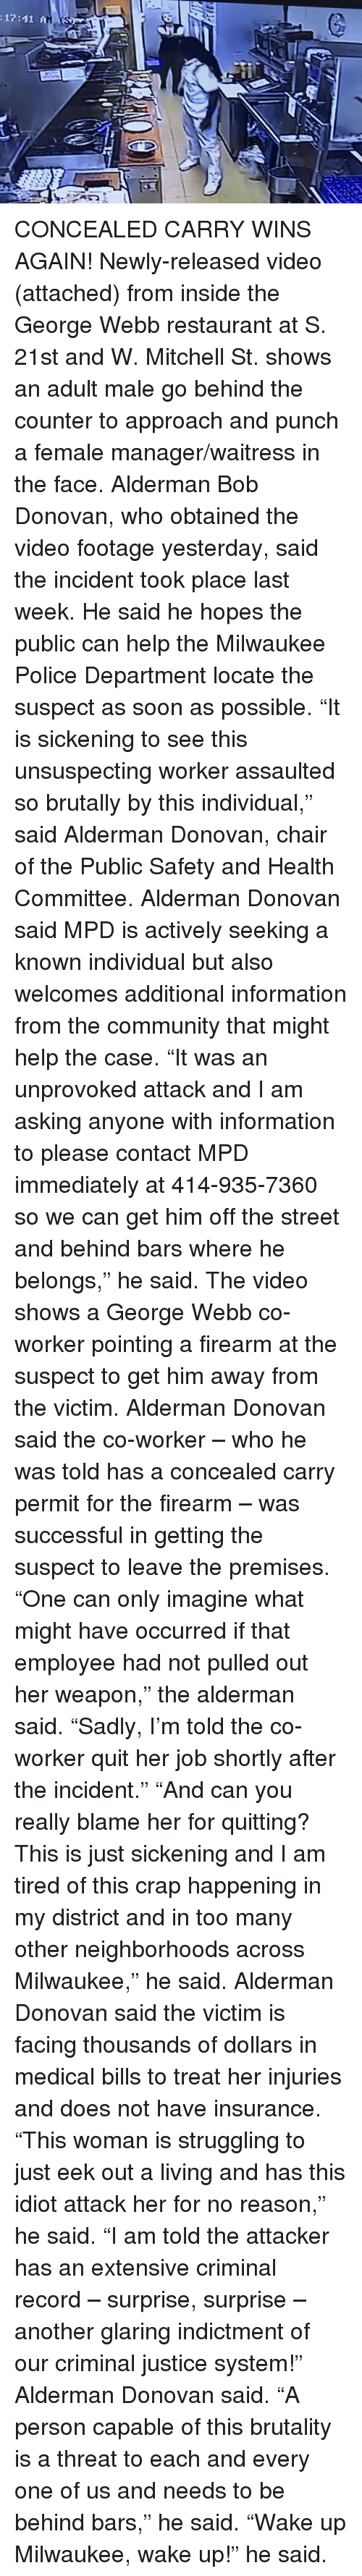 """Community, Police, and Soon...: :17:41 A CONCEALED CARRY WINS AGAIN!  Newly-released video (attached) from inside the George Webb restaurant at S. 21st and W. Mitchell St. shows an adult male go behind the counter to approach and punch a female manager/waitress in the face.  Alderman Bob Donovan, who obtained the video footage yesterday, said the incident took place last week. He said he hopes the public can help the Milwaukee Police Department locate the suspect as soon as possible.  """"It is sickening to see this unsuspecting worker assaulted so brutally by this individual,"""" said Alderman Donovan, chair of the Public Safety and Health Committee.  Alderman Donovan said MPD is actively seeking a known individual but also welcomes additional information from the community that might help the case.  """"It was an unprovoked attack and I am asking anyone with information to please contact MPD immediately at 414-935-7360 so we can get him off the street and behind bars where he belongs,"""" he said.  The video shows a George Webb co-worker pointing a firearm at the suspect to get him away from the victim. Alderman Donovan said the co-worker – who he was told has a concealed carry permit for the firearm – was successful in getting the suspect to leave the premises.  """"One can only imagine what might have occurred if that employee had not pulled out her weapon,"""" the alderman said. """"Sadly, I'm told the co-worker quit her job shortly after the incident.""""  """"And can you really blame her for quitting? This is just sickening and I am tired of this crap happening in my district and in too many other neighborhoods across Milwaukee,"""" he said.  Alderman Donovan said the victim is facing thousands of dollars in medical bills to treat her injuries and does not have insurance. """"This woman is struggling to just eek out a living and has this idiot attack her for no reason,"""" he said.  """"I am told the attacker has an extensive criminal record – surprise, surprise – another glaring indictment of our"""